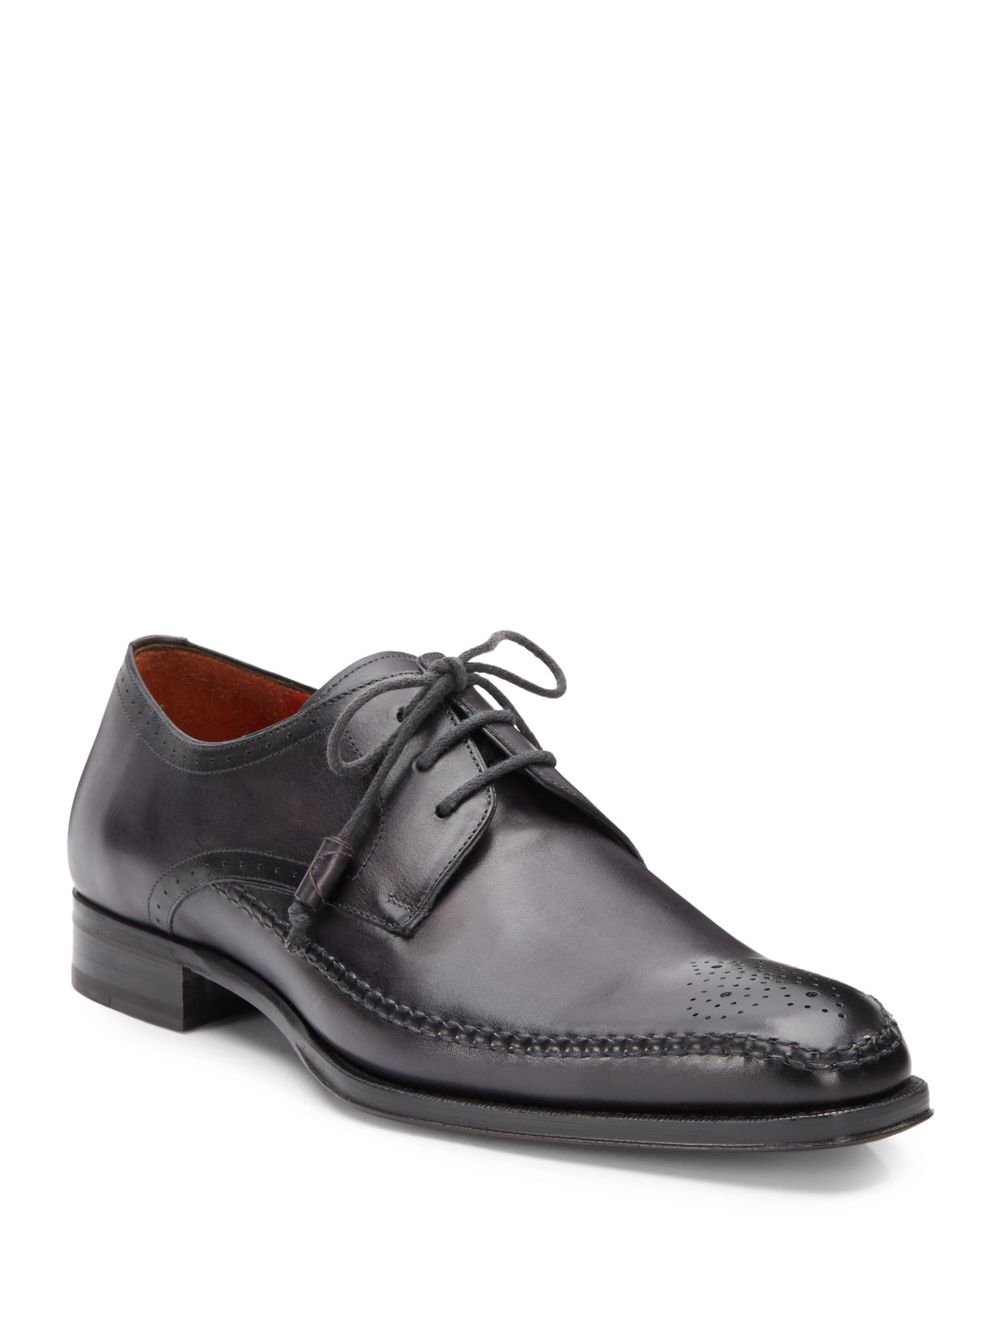 Mezlan Fontana Perforated Leather Laceup Shoes In Gray For